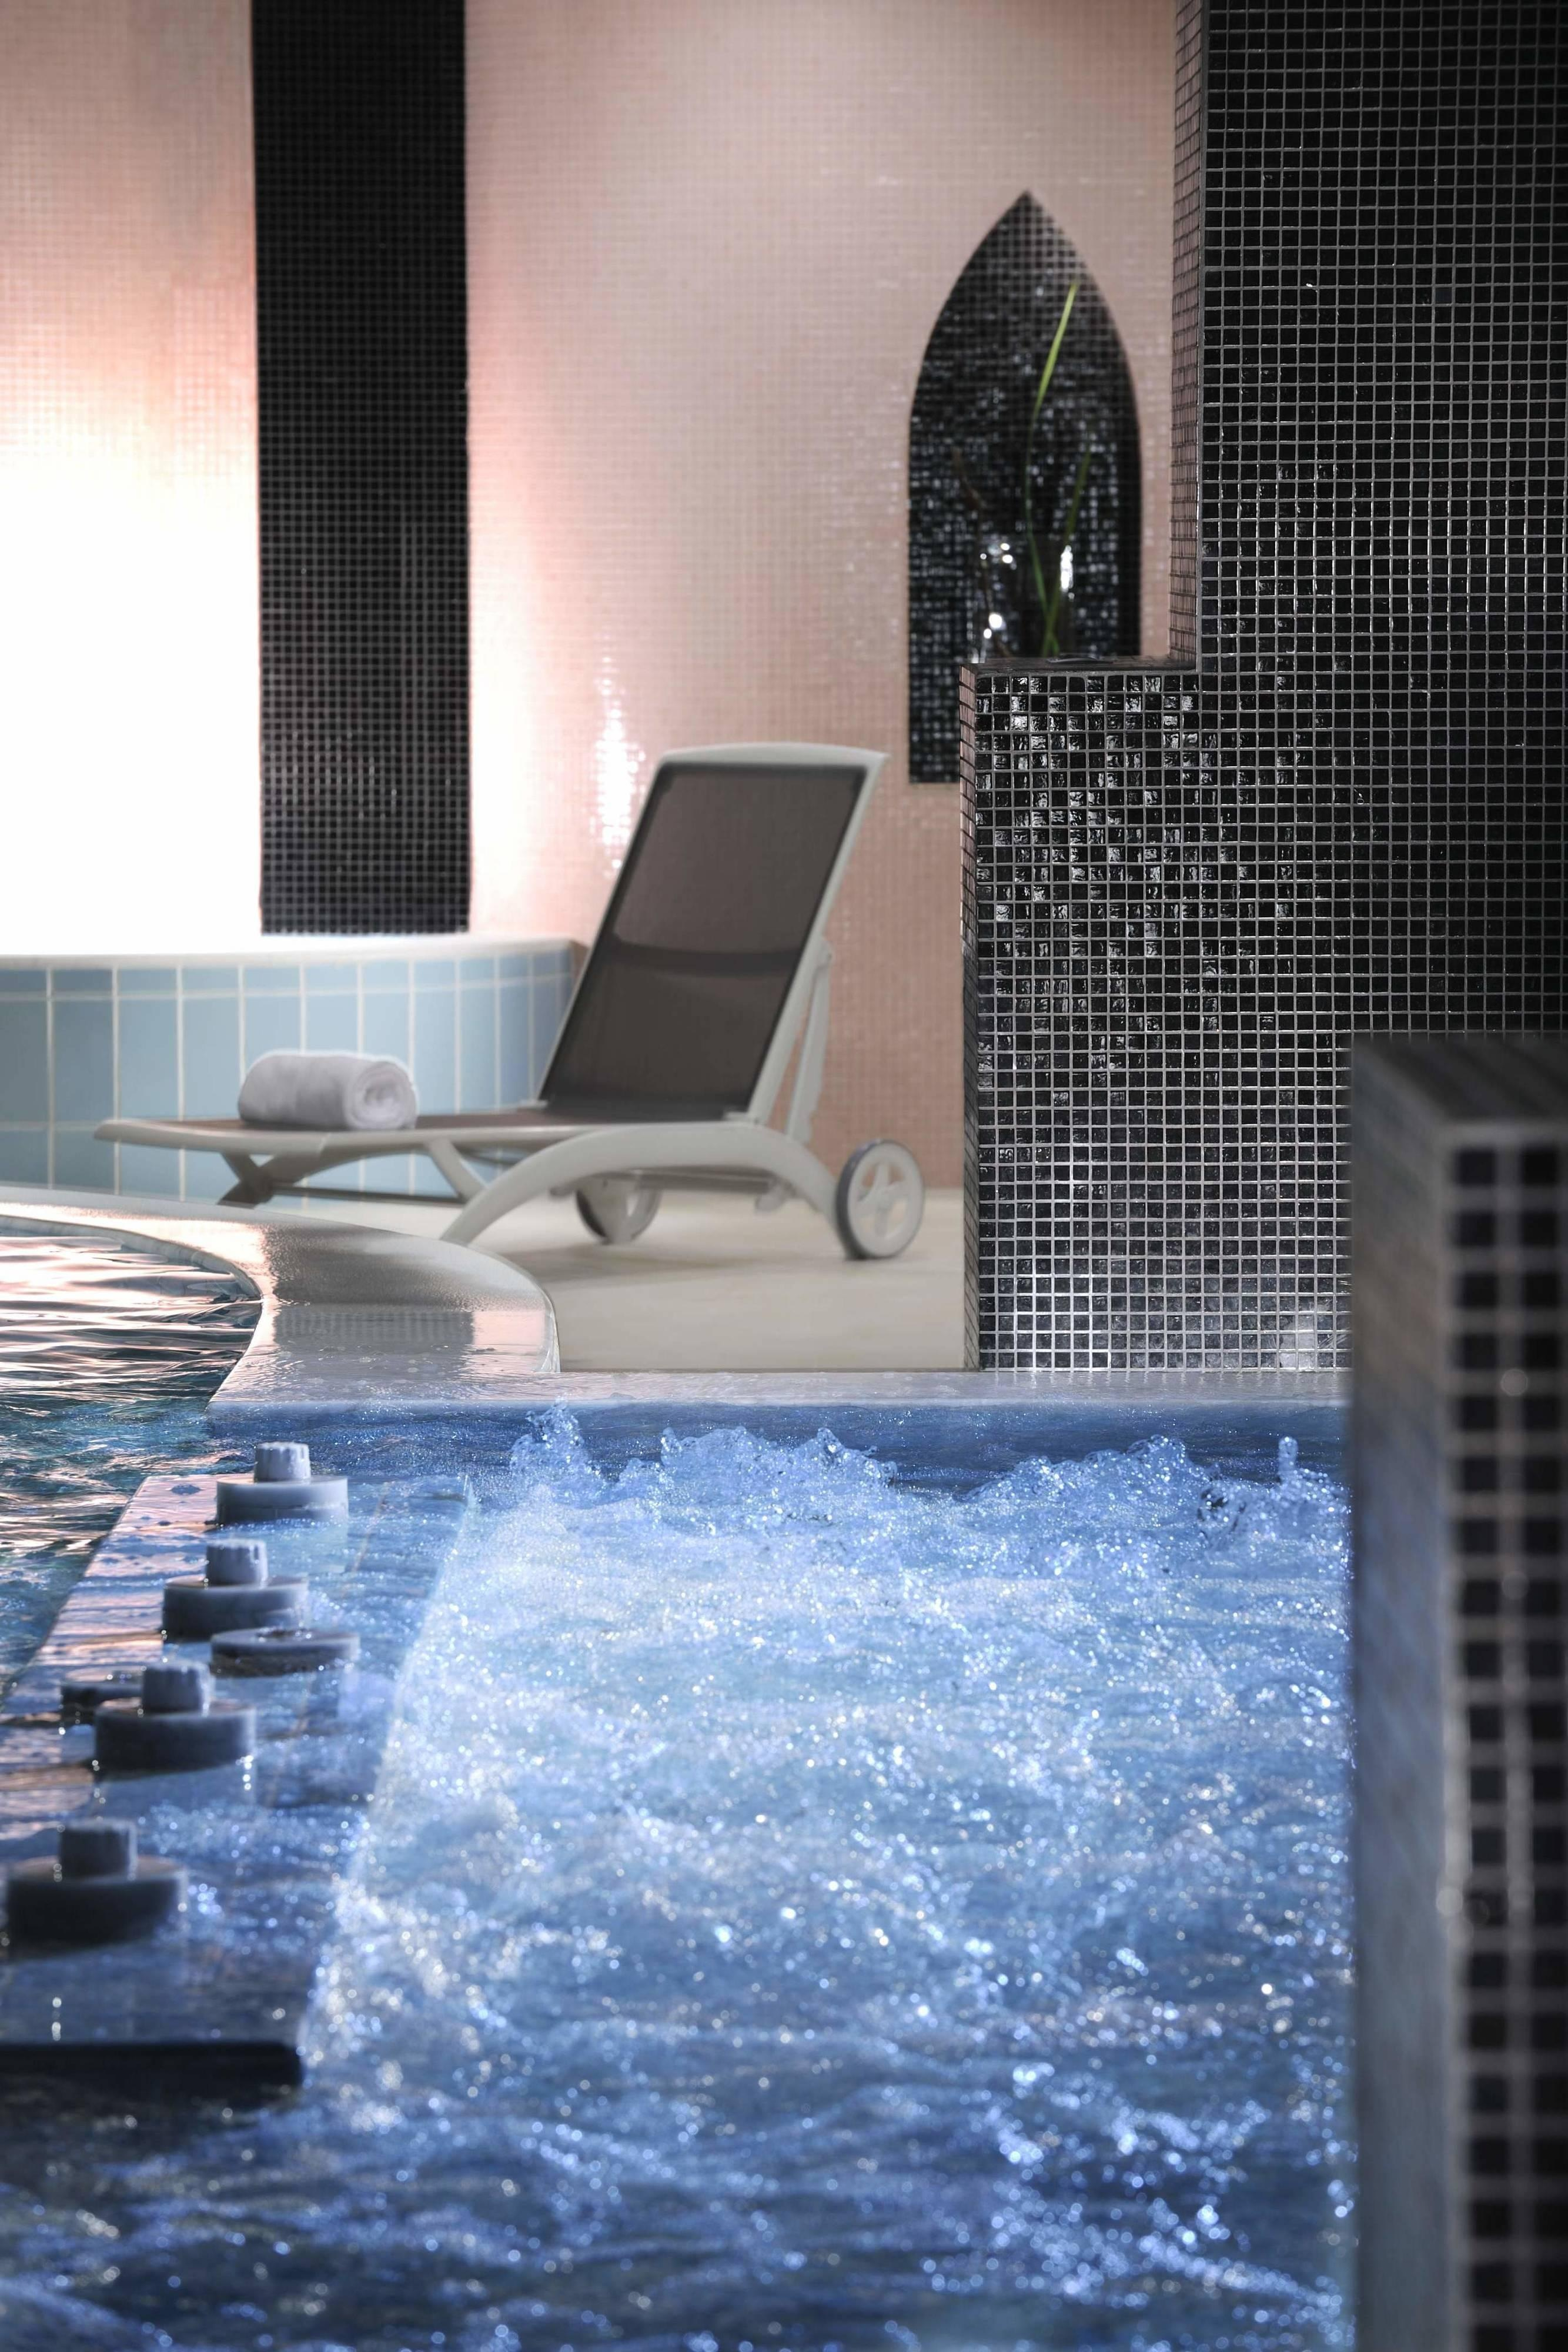 Rome hotel spa indoor whirpool